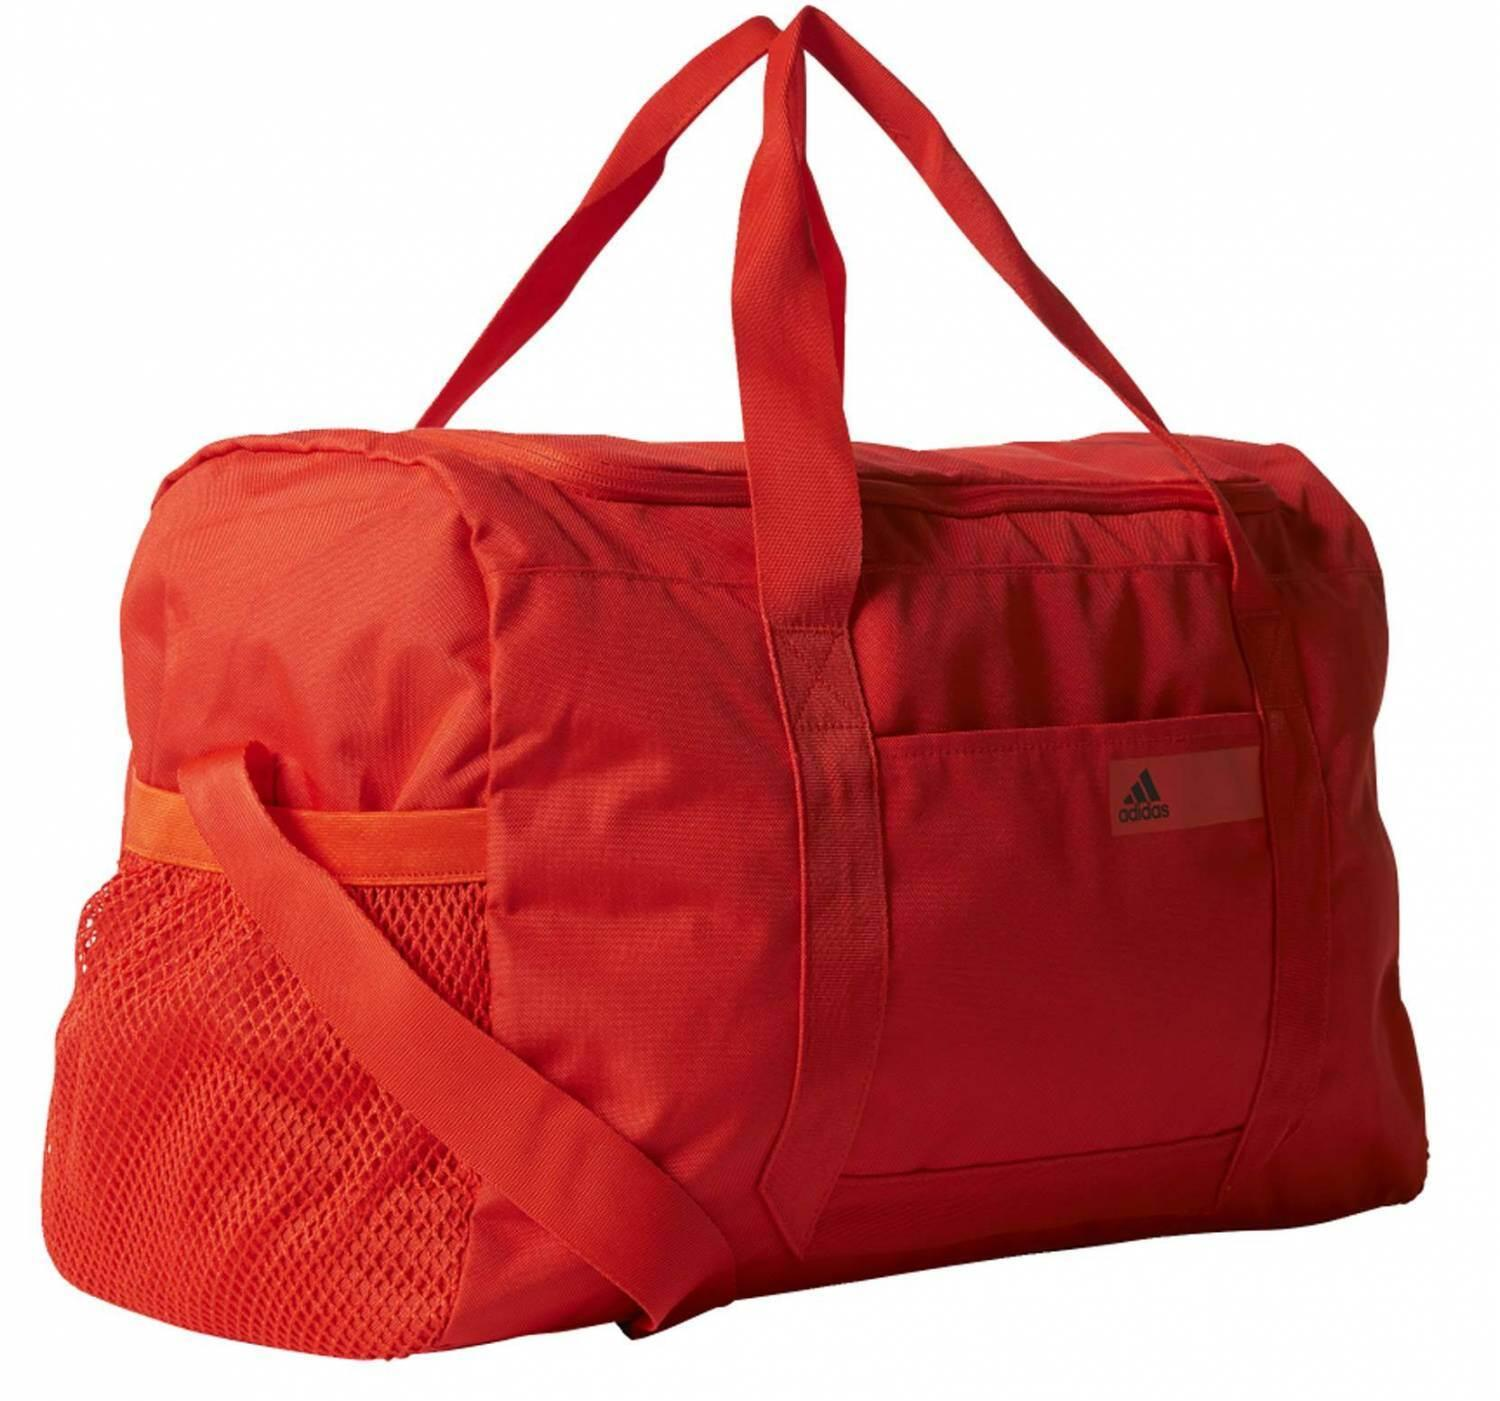 adidas-good-teambag-m-solid-sporttasche-farbe-core-red-s17-core-red-s17-core-red-s17-